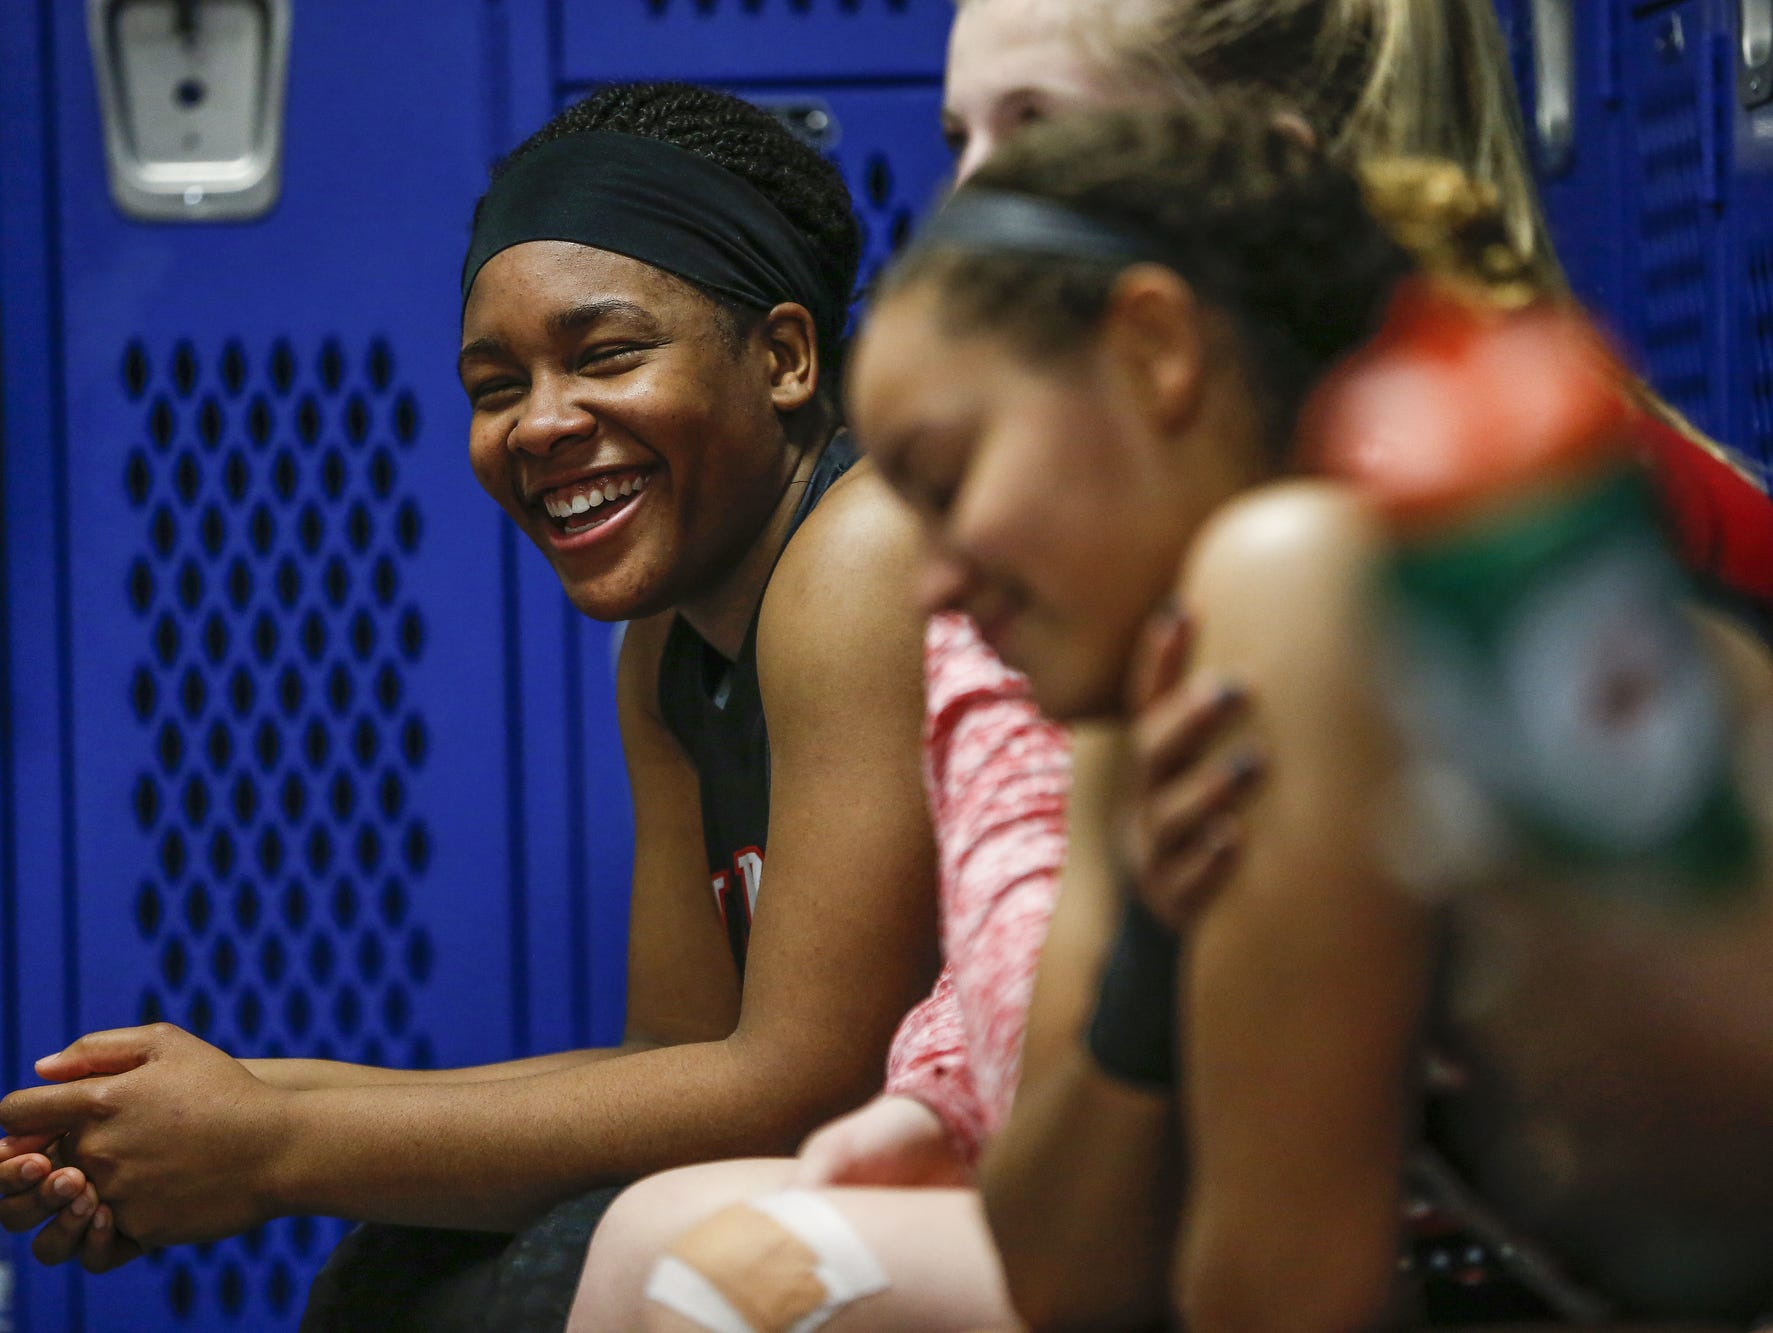 North Central Panthers' Ajanae' Thomas (34) laughs alongside her teammates after the Panthers' victory over the Carmel Greyhounds at Carmel High School on Friday, Dec. 16, 2016.